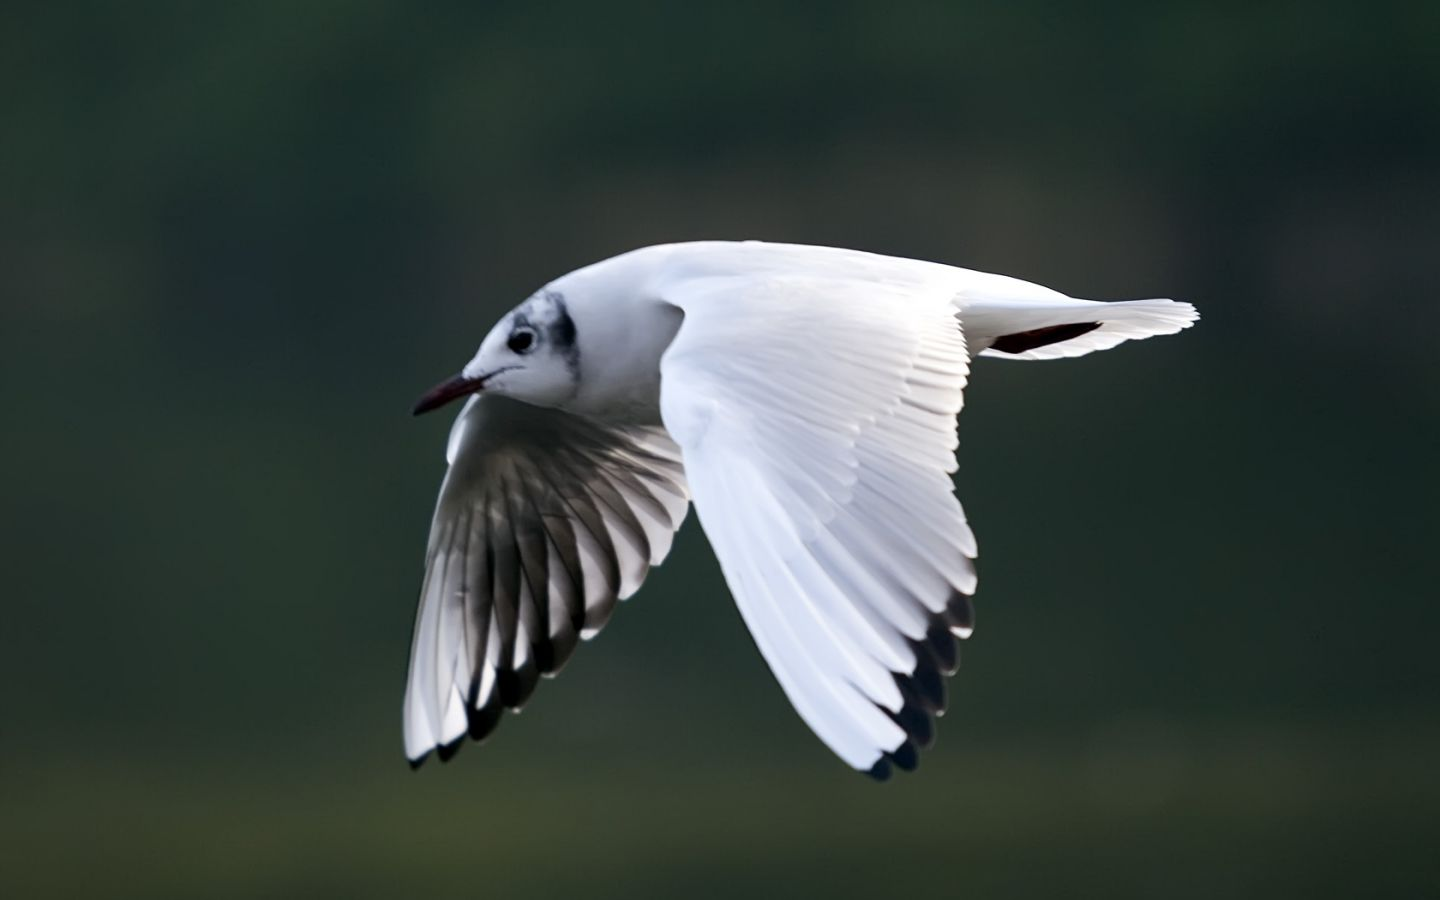 Seagull Flying Close Up Wallpaper 1440x900